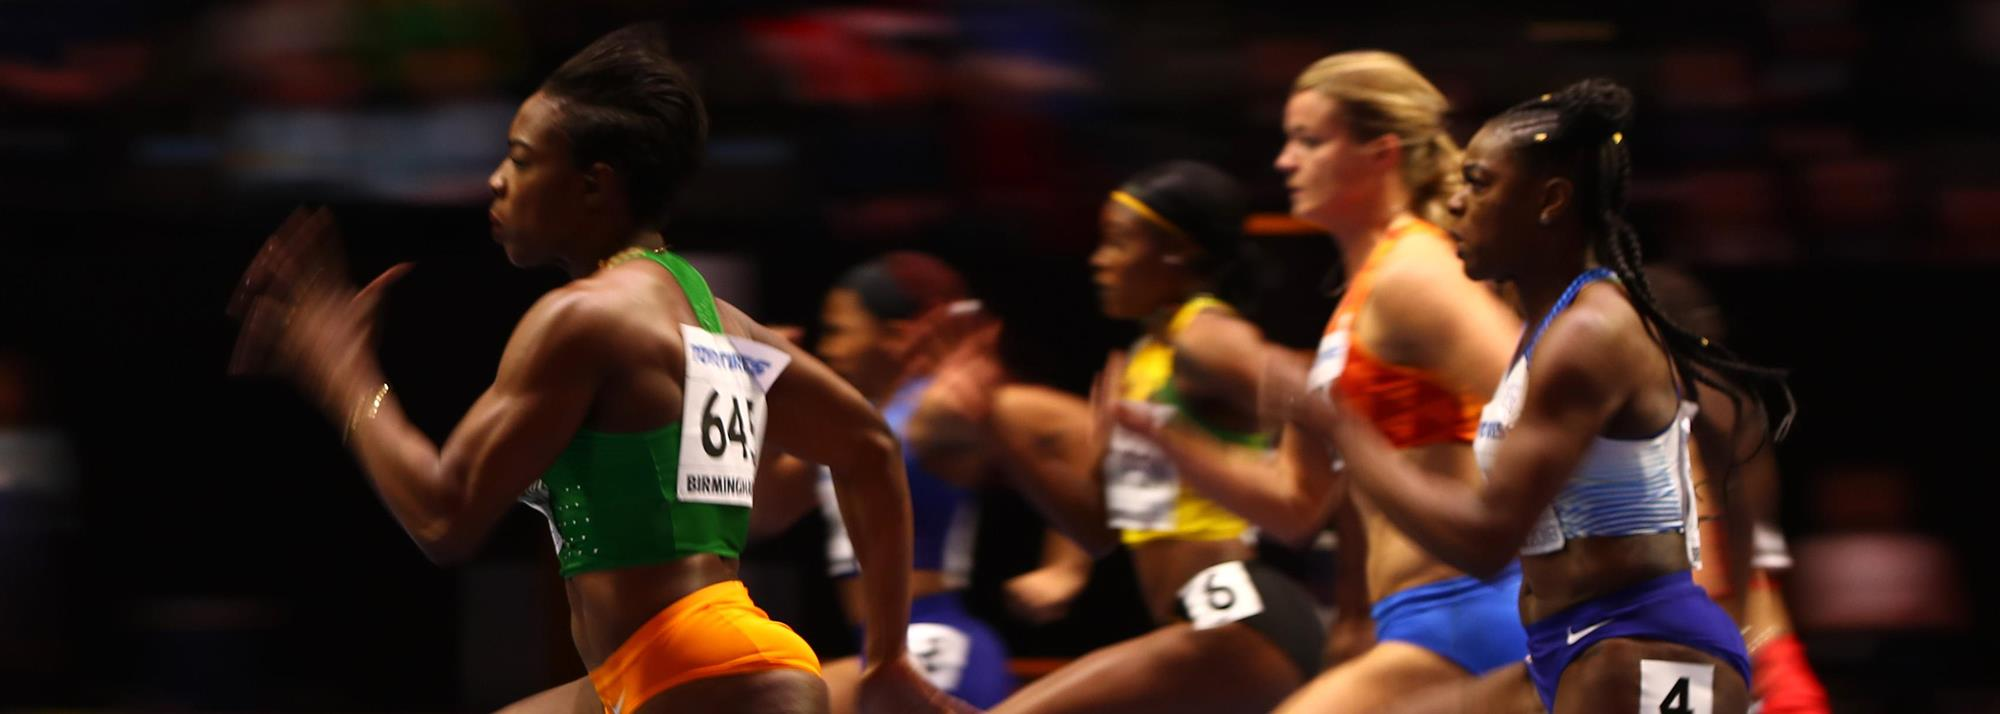 Fraser-Pryce and Ahoure to square off in Glasgow 60m